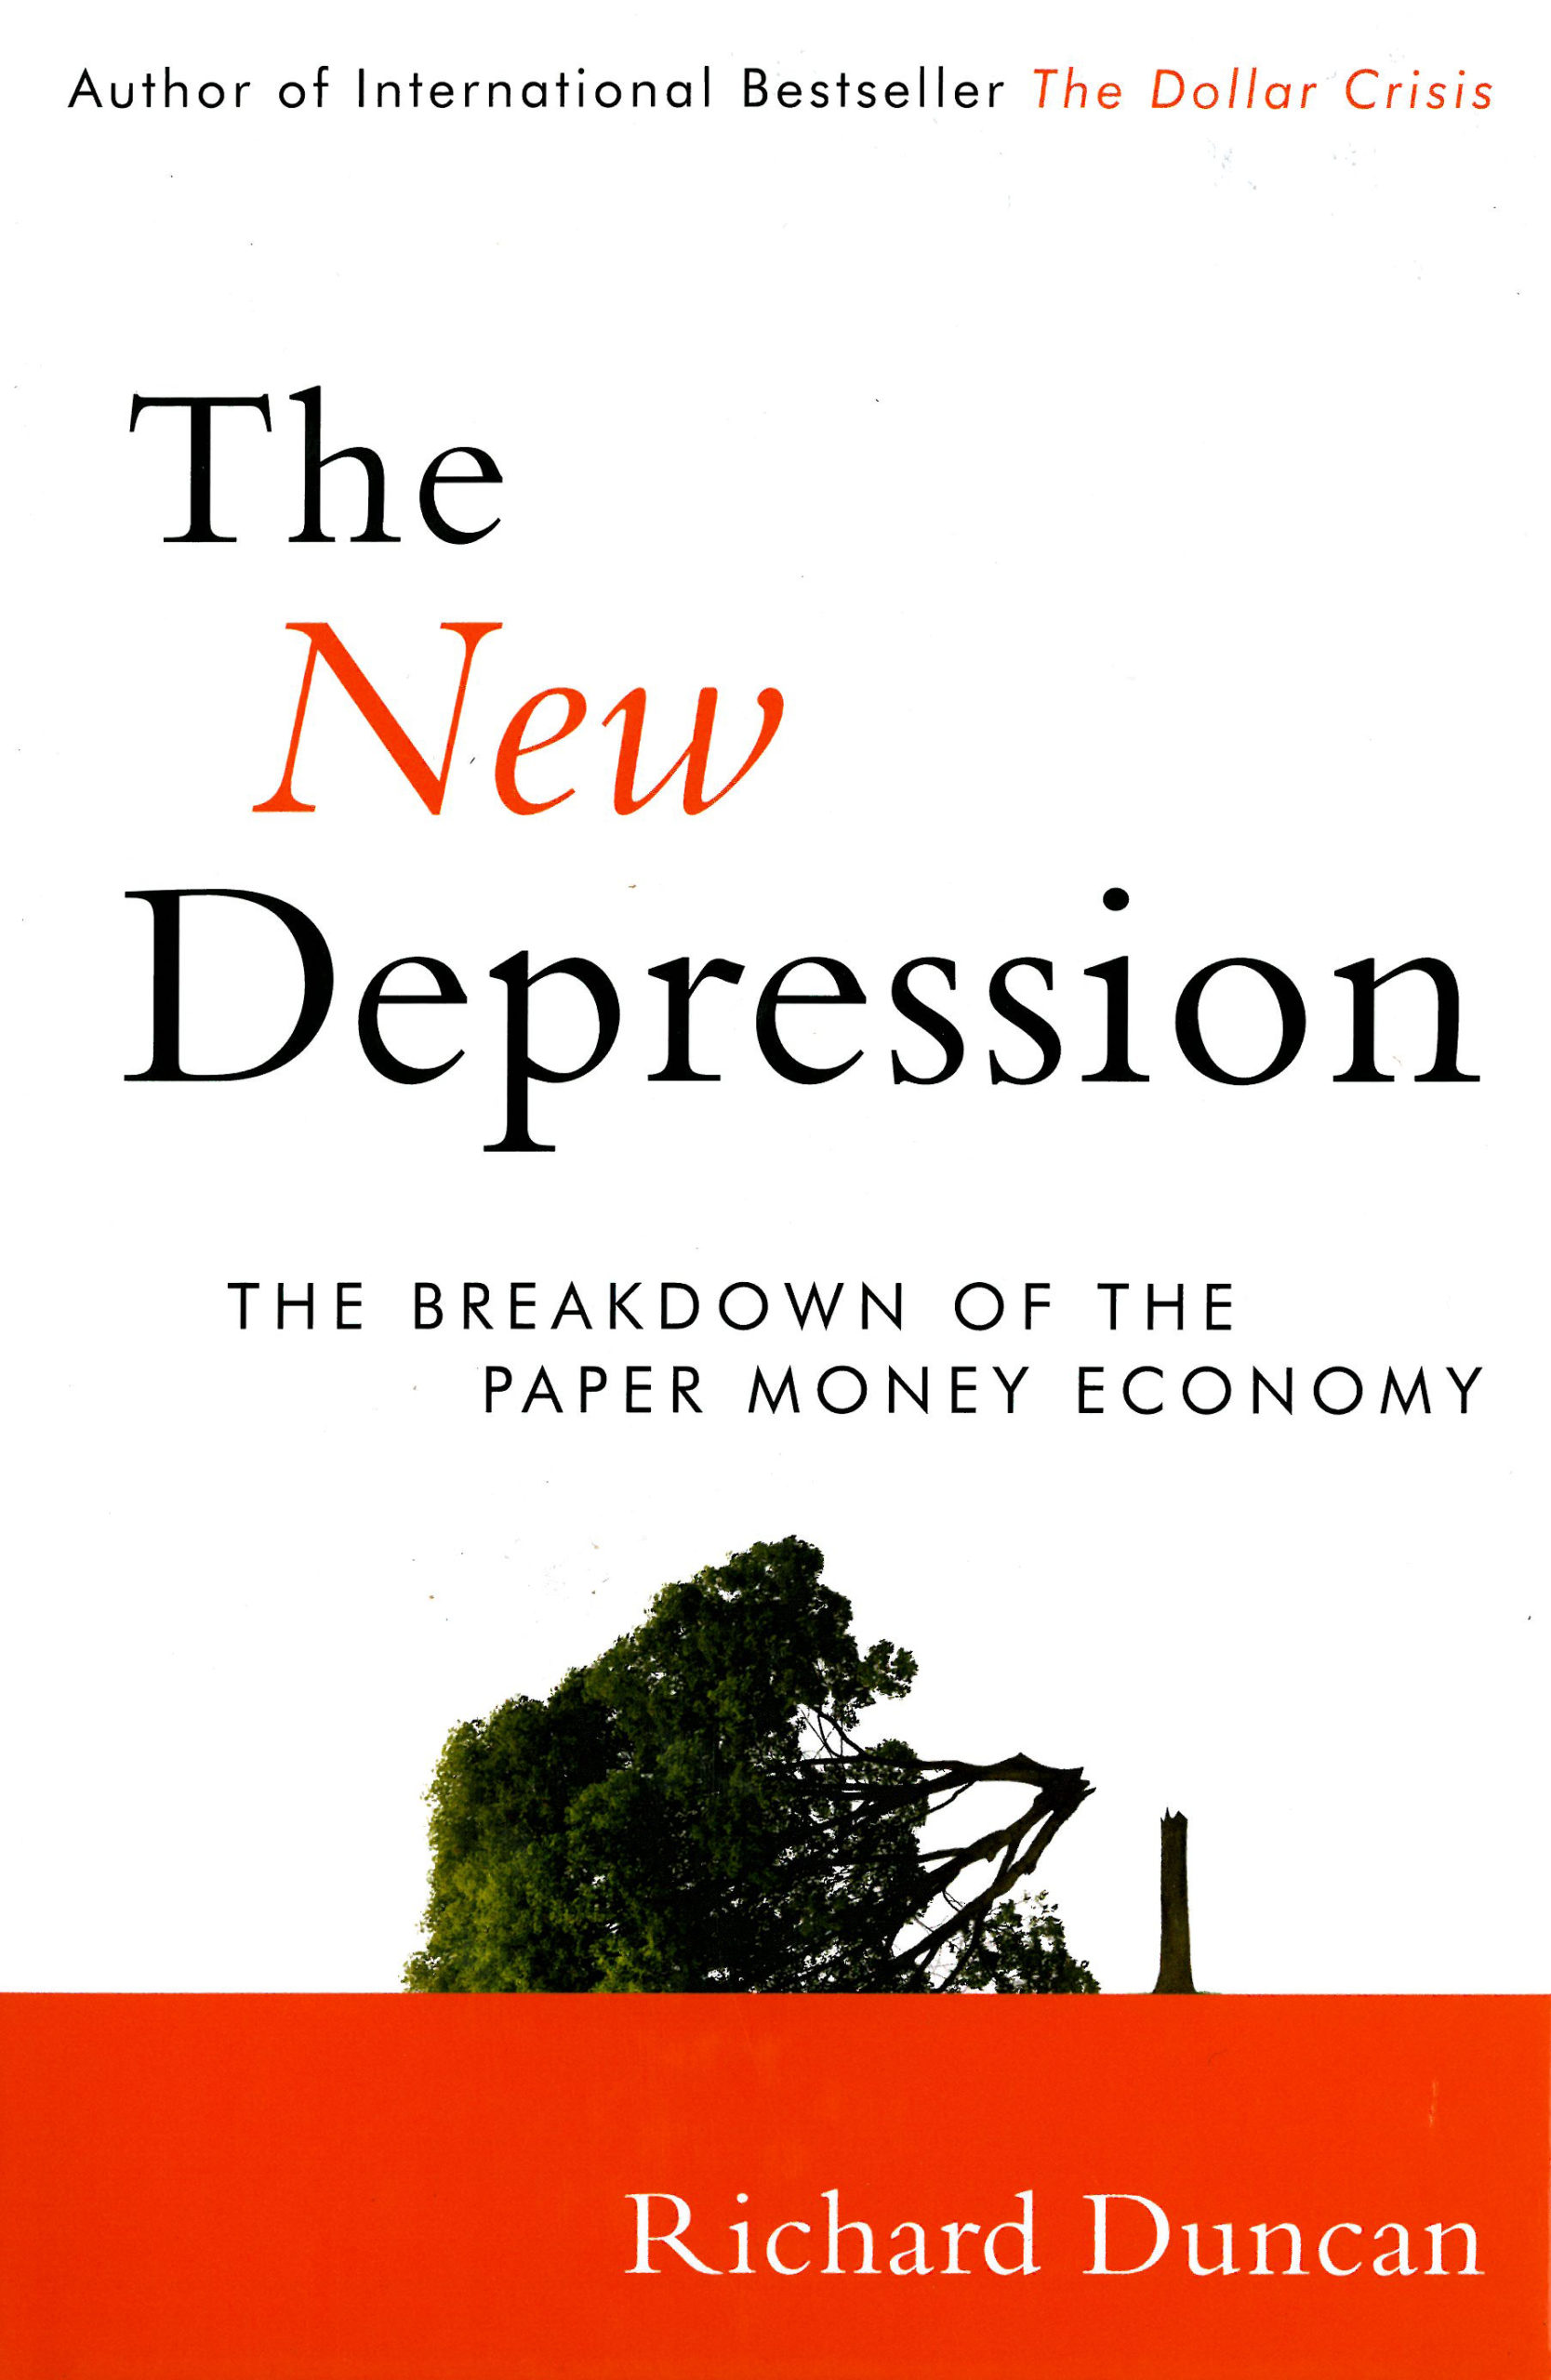 Richard Duncan: The New Depression. The Breakdown of the Paper Money Economy. John Wiley & Sons 2012, 179 s.